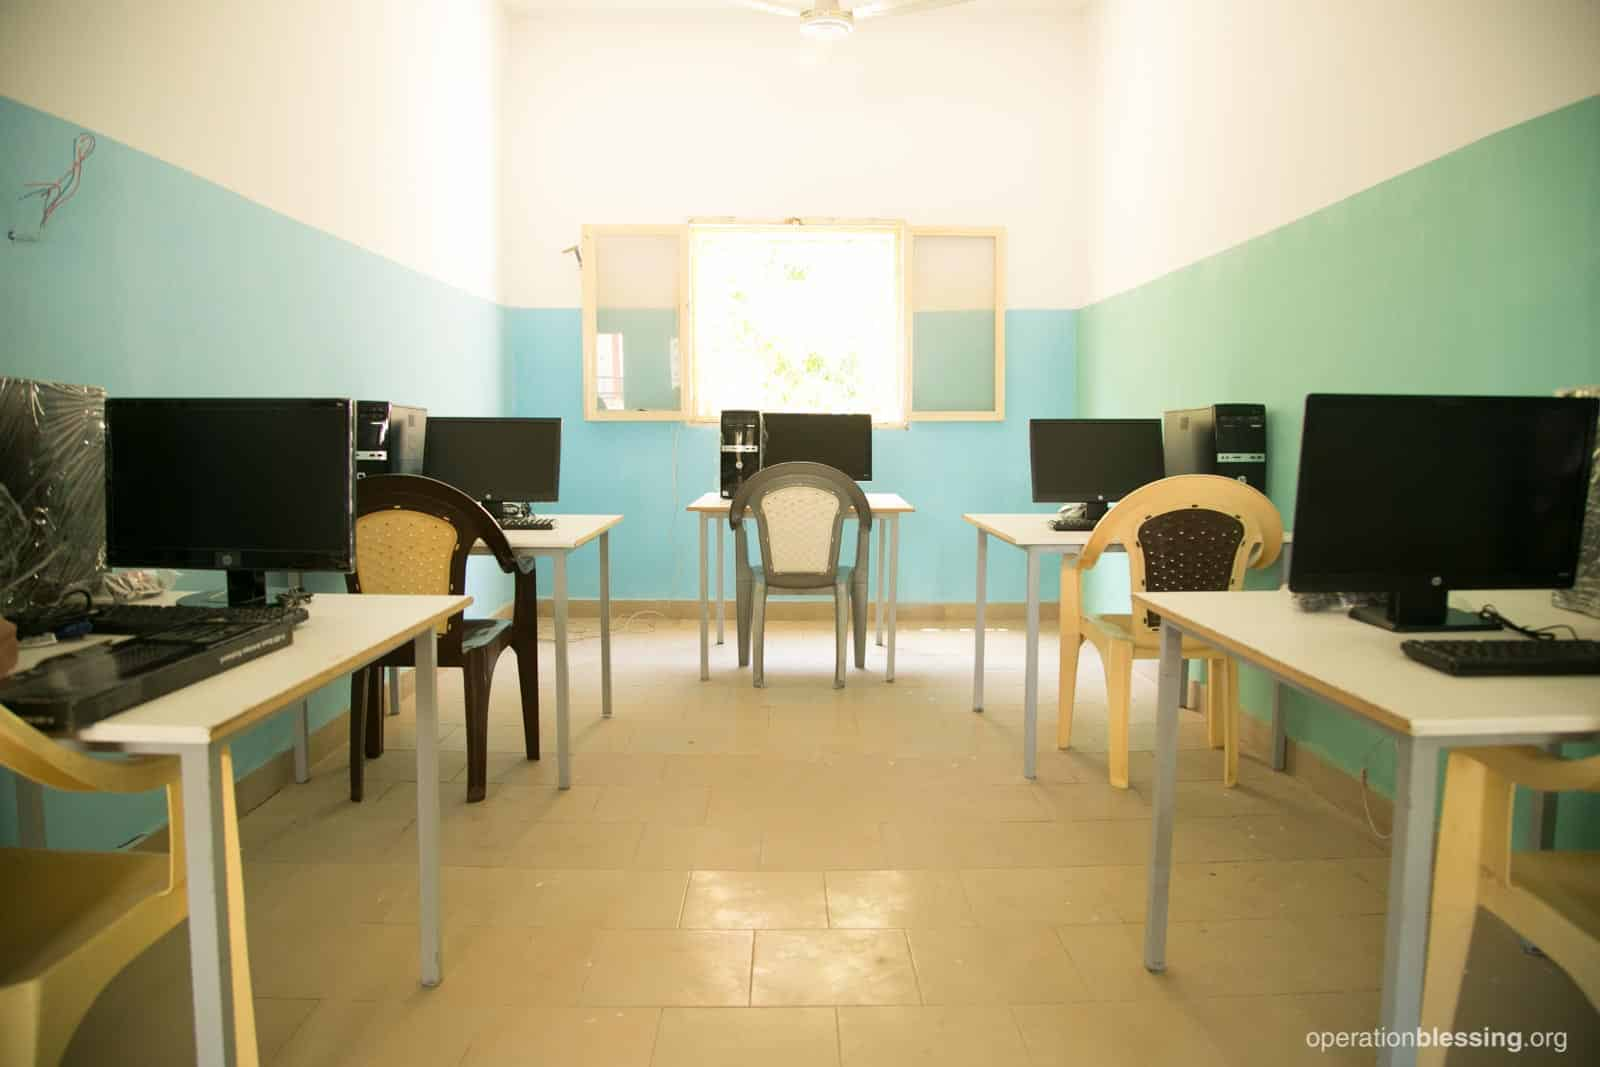 A classroom in Senegal filled with new computers from Operation Blessing partners.